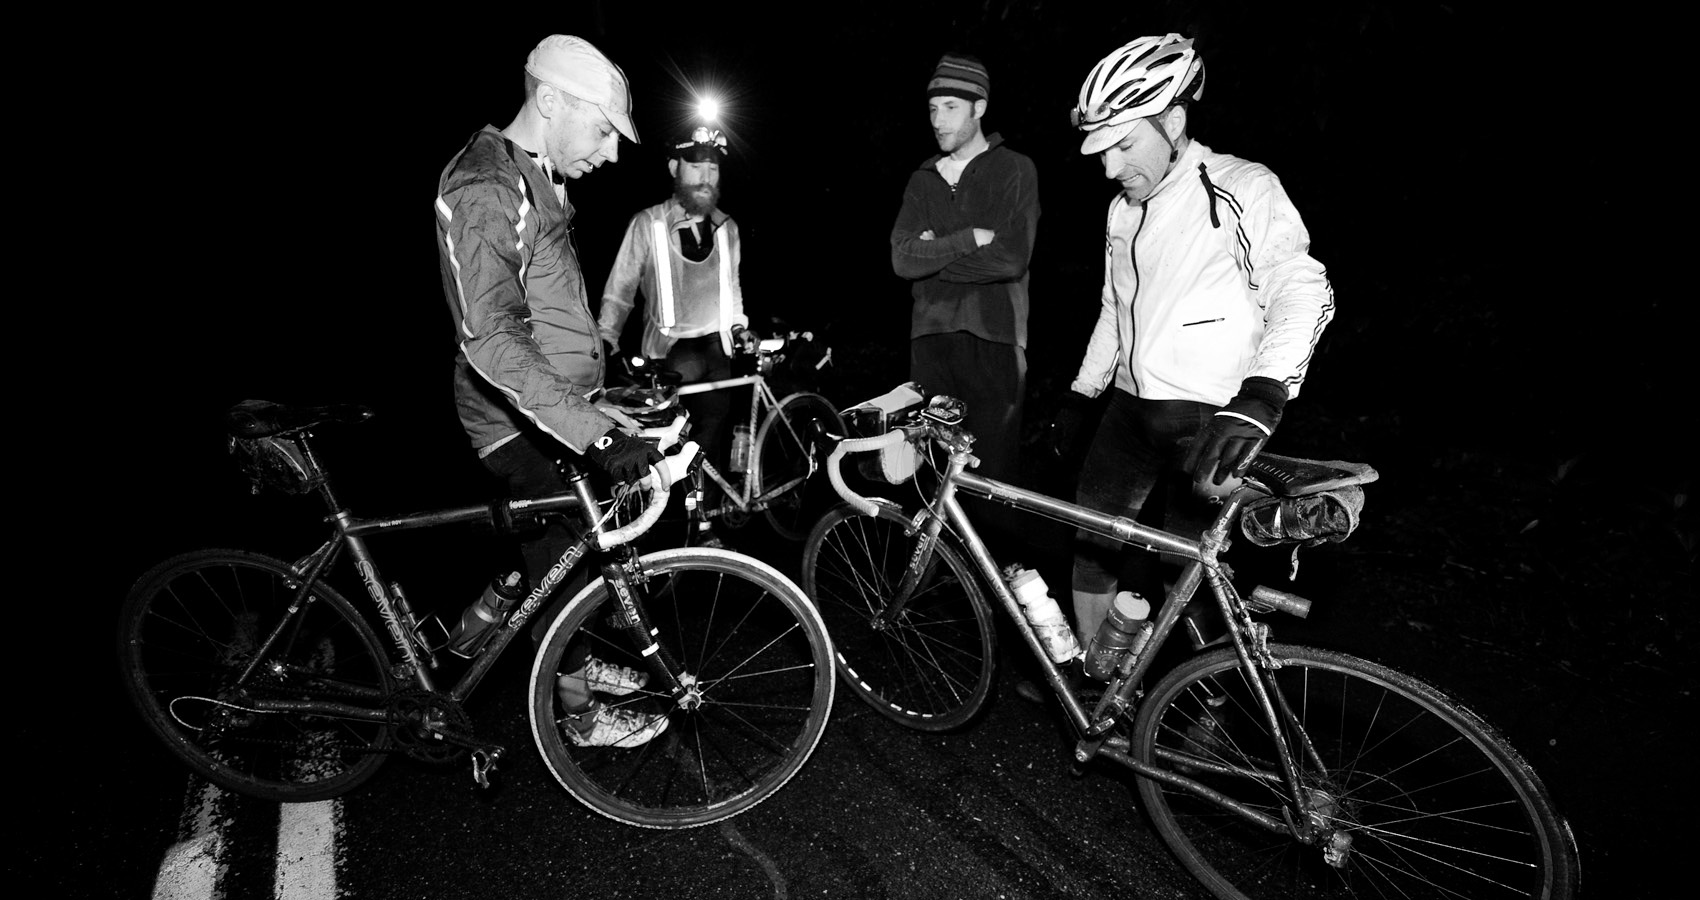 riders gather in the black of night to ride long distances together